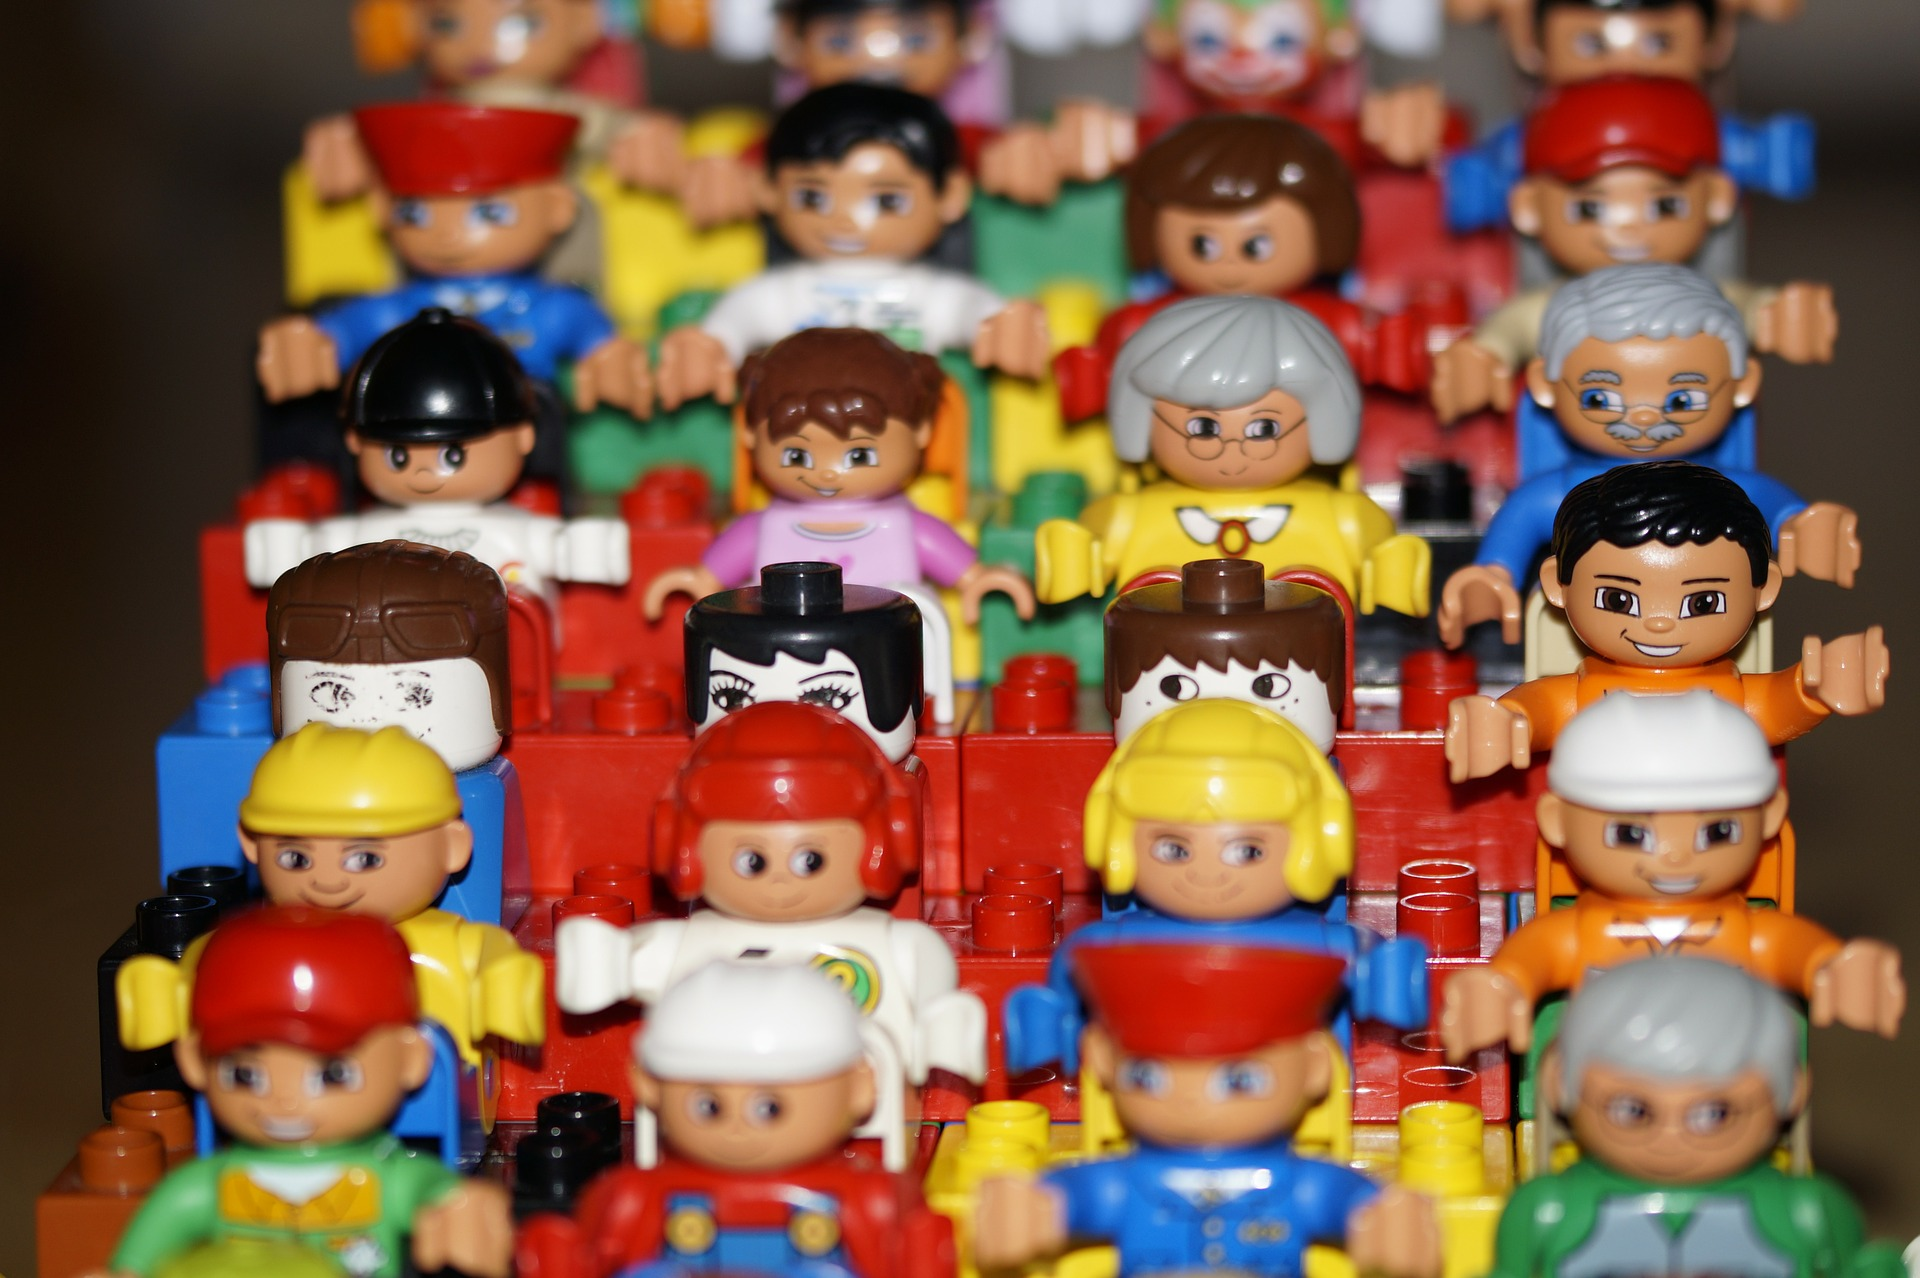 I would probably like flying a lot more if I were surrounded by really creepy smiling Lego people.